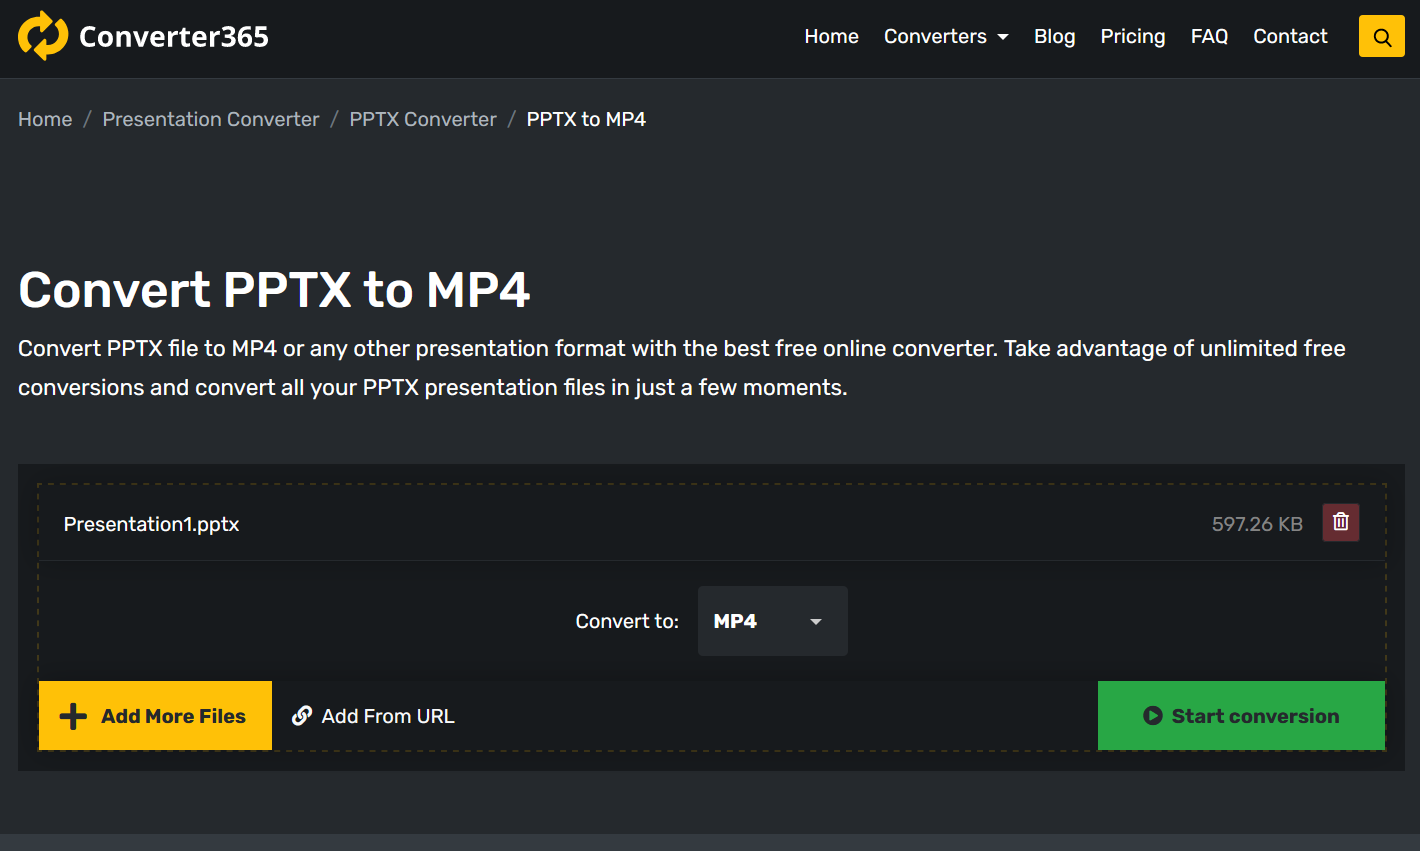 How to convert PPTX to MP4 online?